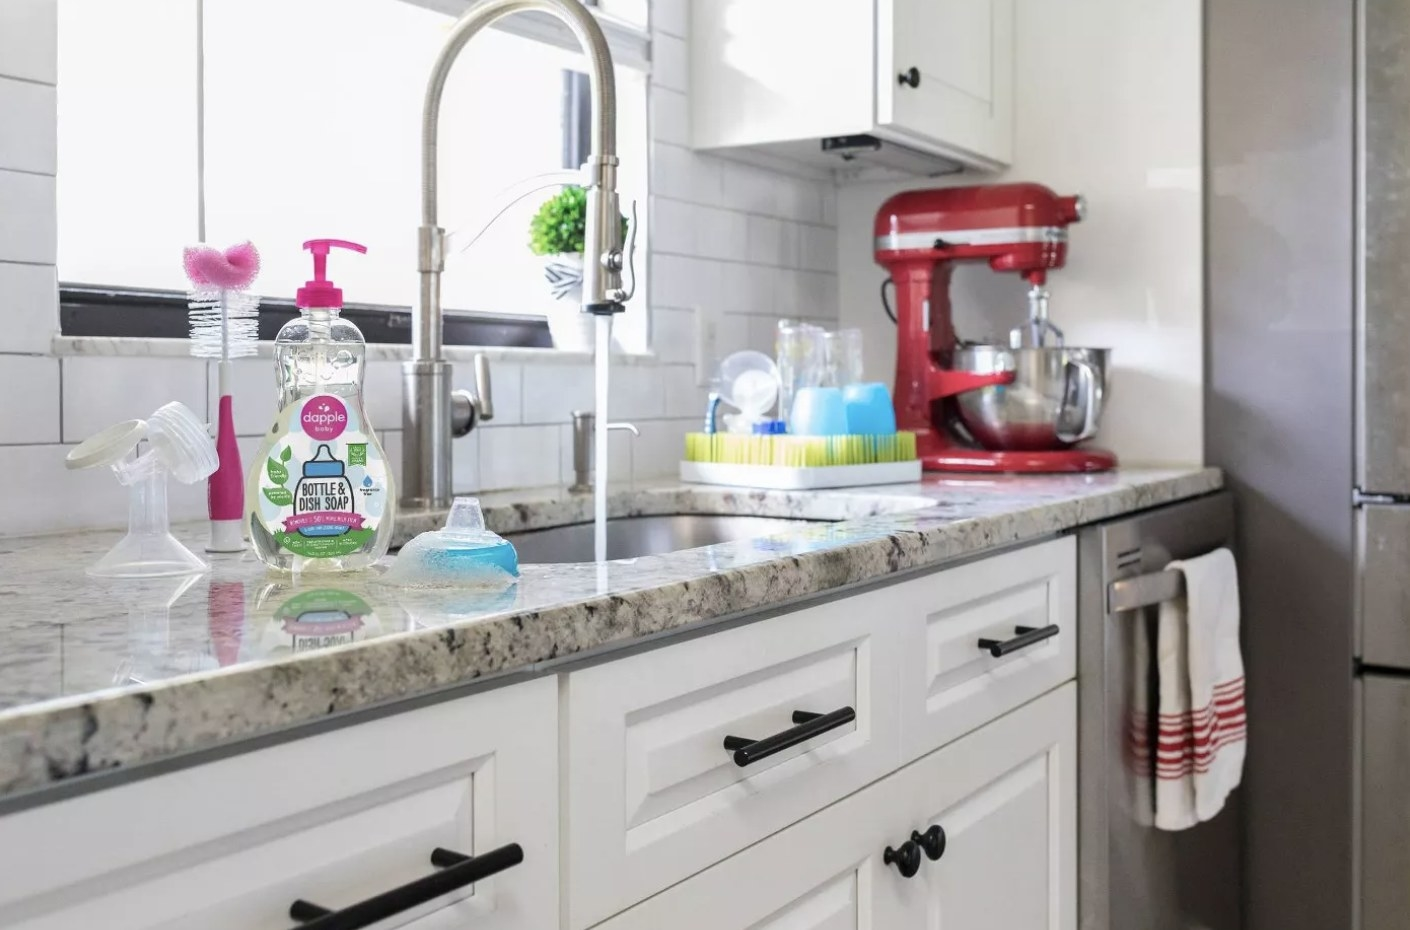 Pink and clear bottle of Dapple Bottle and Dish Soap next to a silver sink